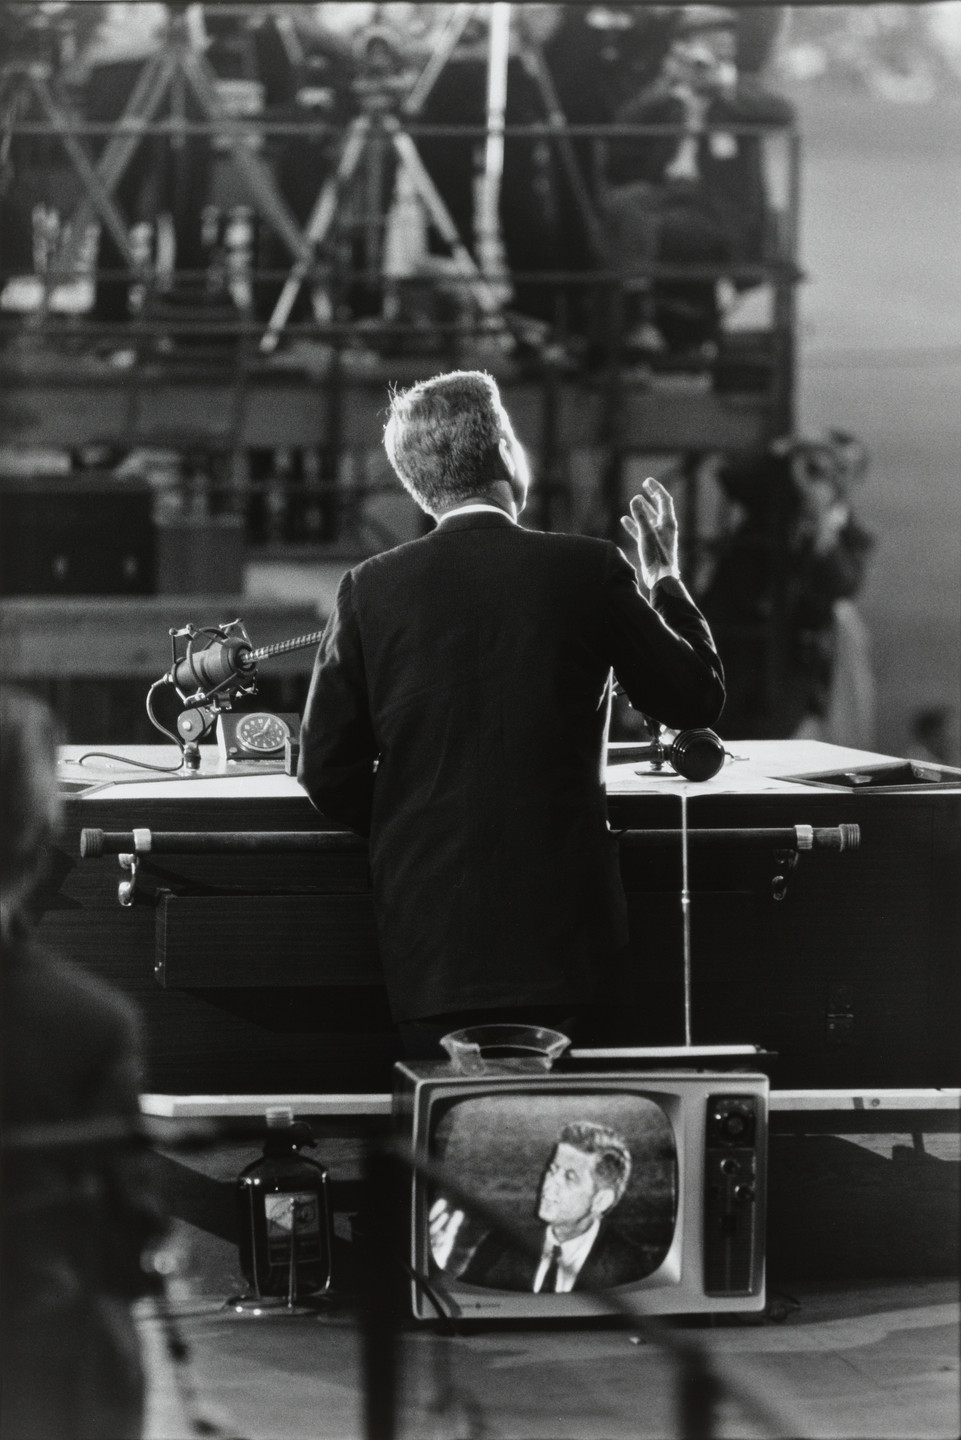 Garry Winogrand. John F. Kennedy, Democratic National Convention, Los Angeles from the portfolio Big Shots. 1960